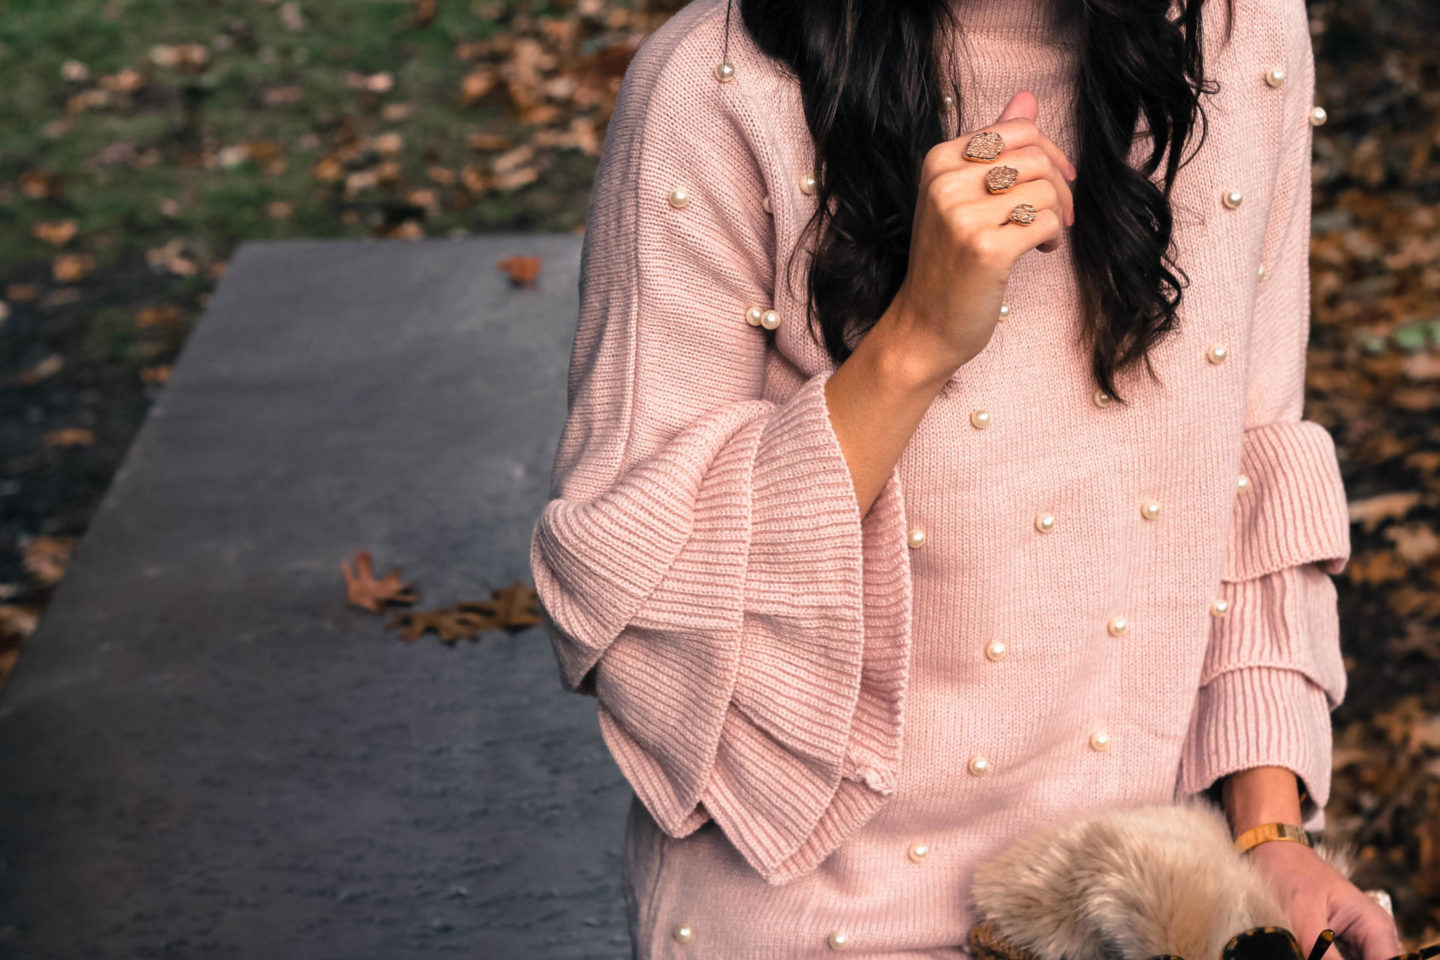 Pearl Embellished Clothing: The Perfect Pearl Studded Sweater - Wear a Pearl Embellished Sweater This Holiday Season by New York fashion blogger Style Waltz